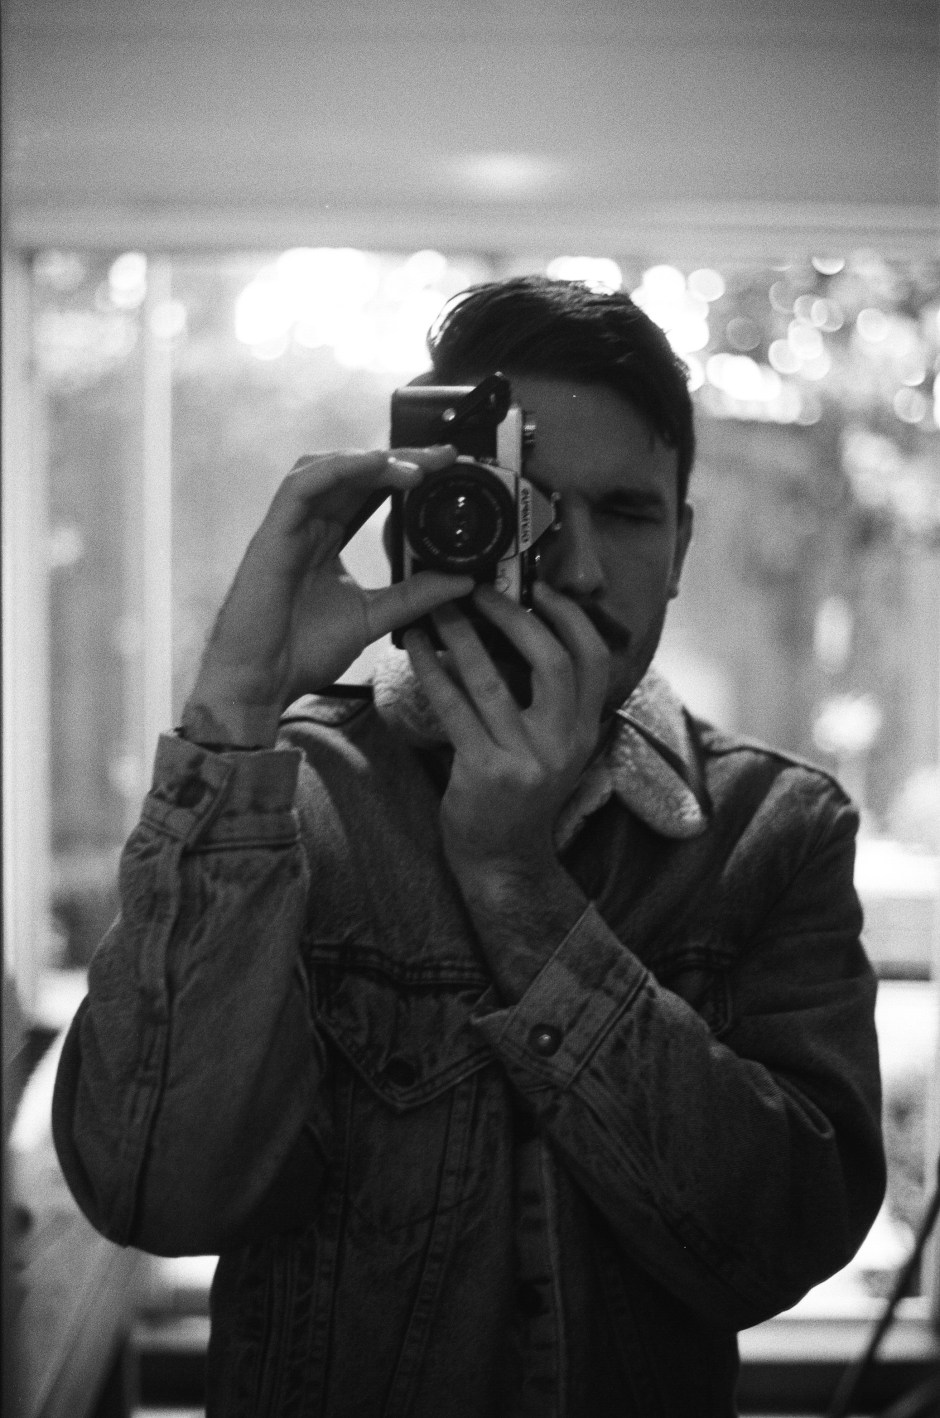 Chris Frangou Self Portrait